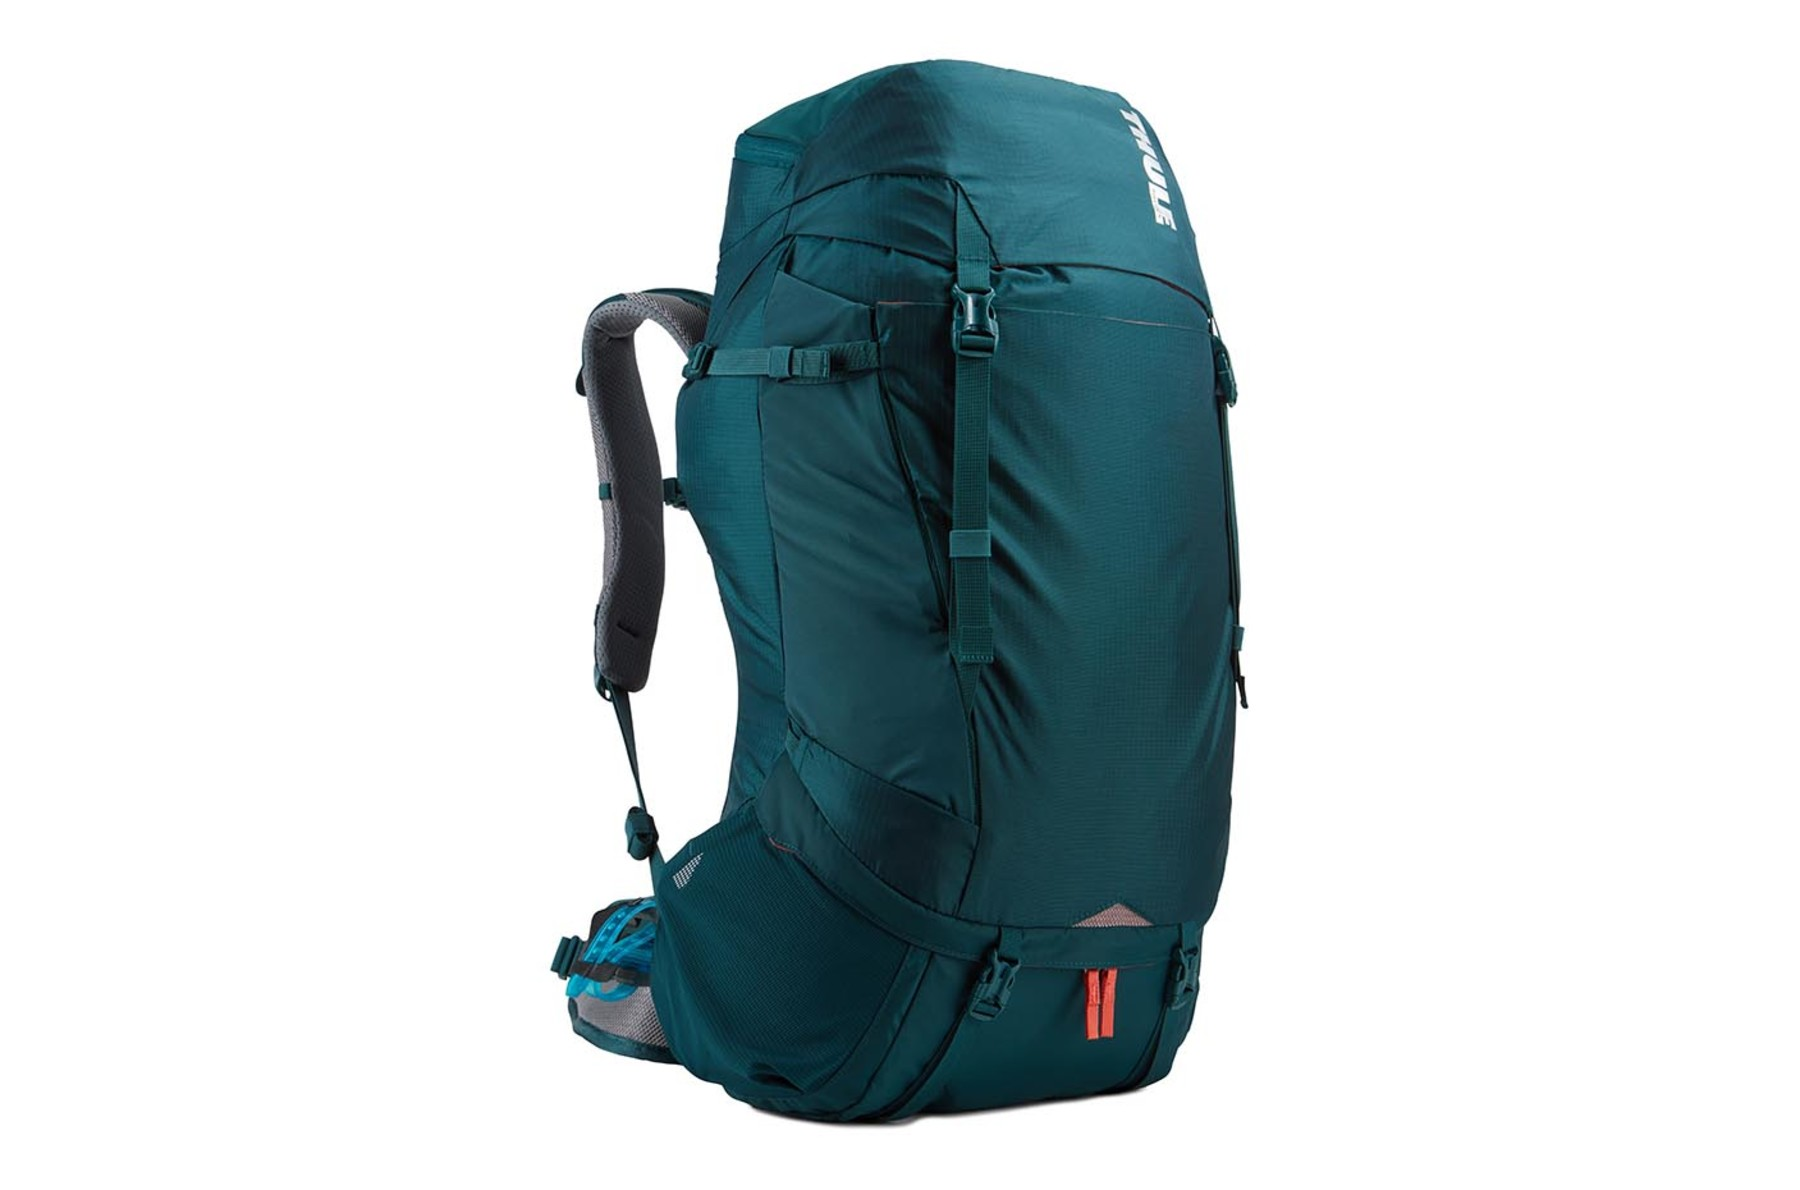 Hiking backpack-Thule Capstone 50L Women's